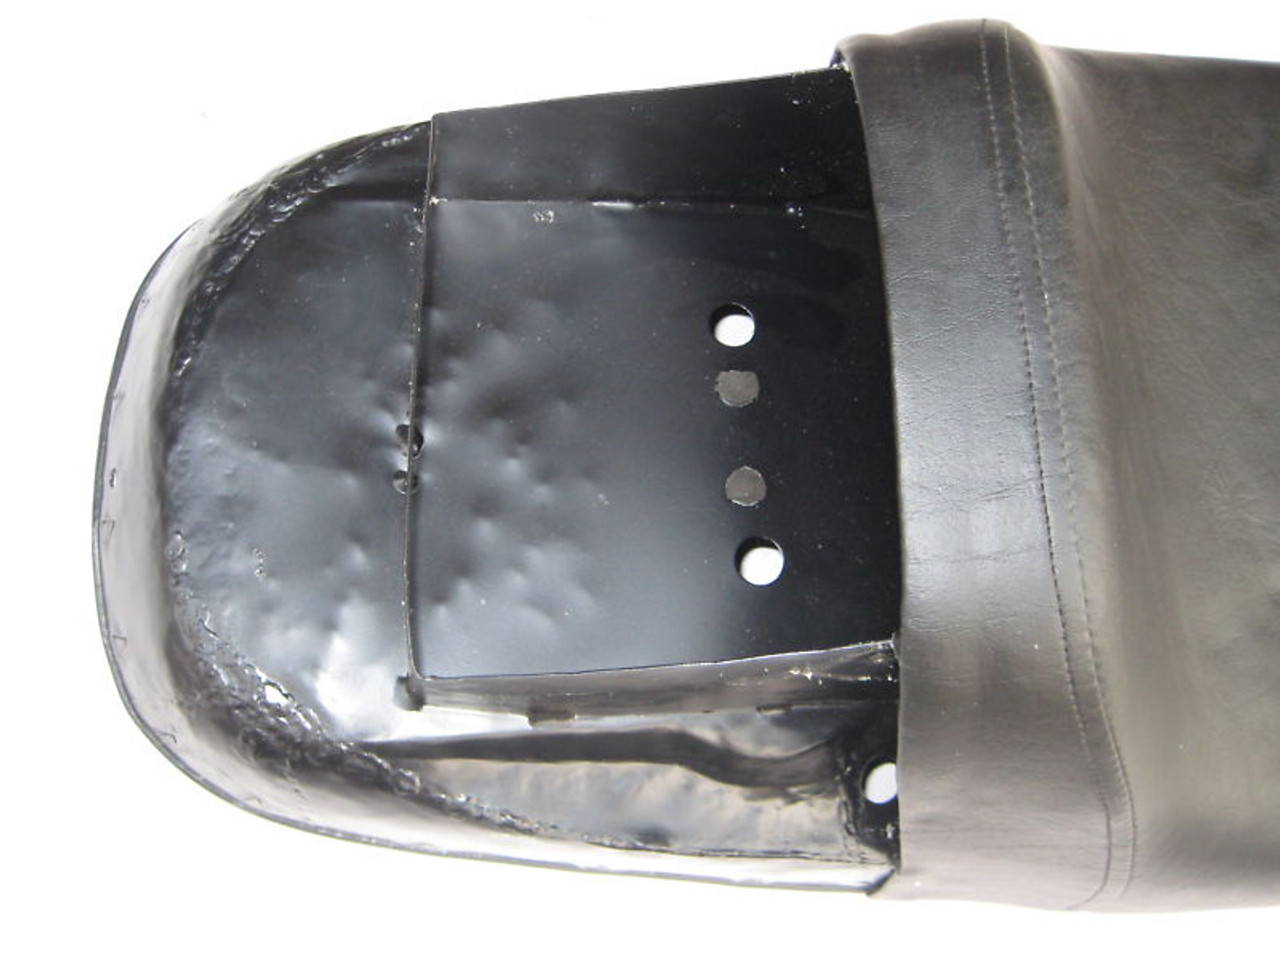 1971 - 1974 Honda CB500F CB500 Cafe Racer Motorcycle Seat with Metal Cowl #2697